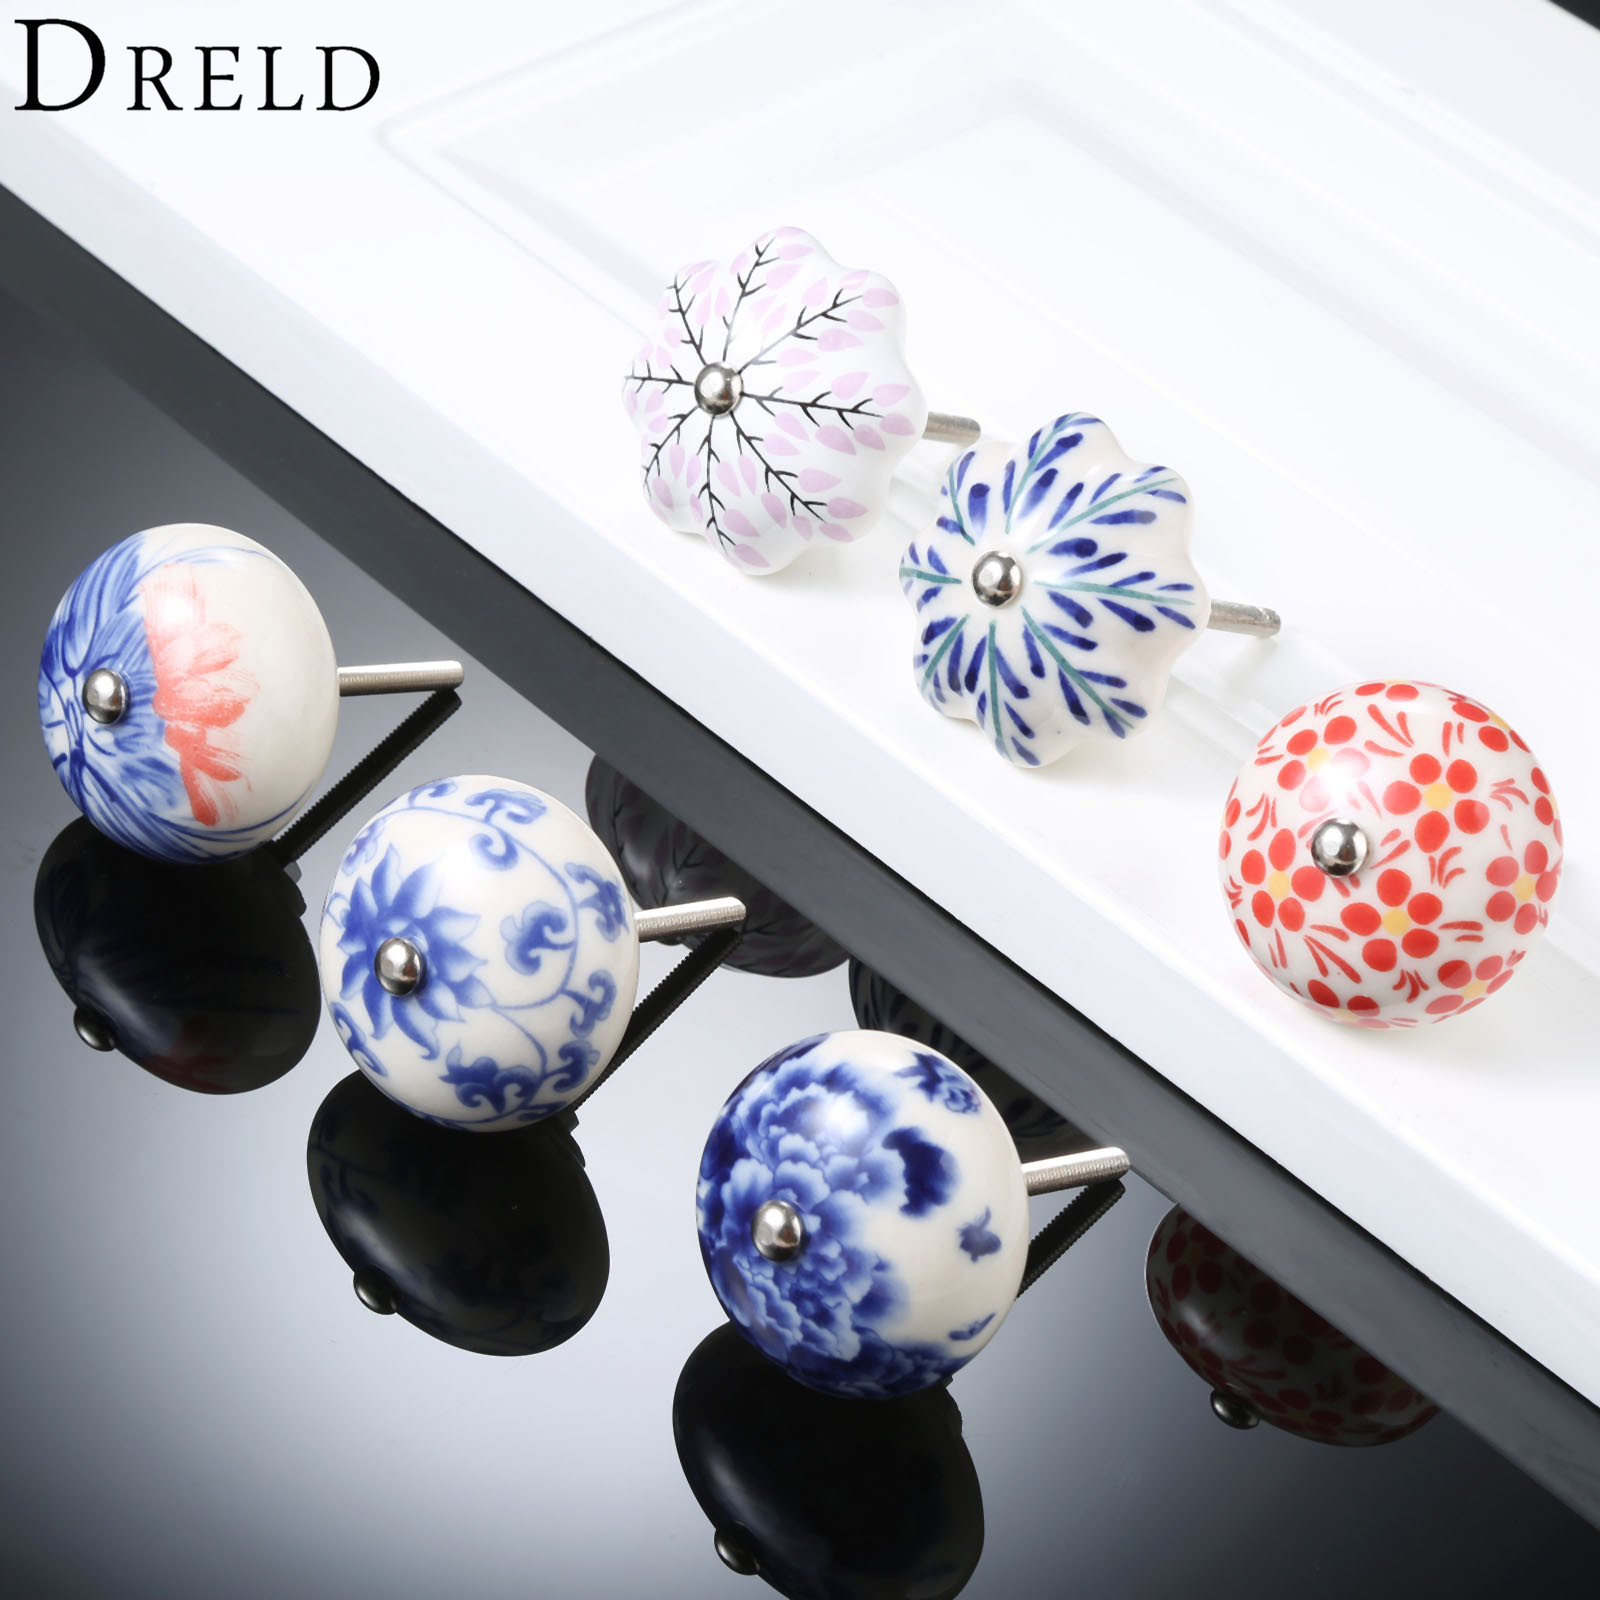 DRELD 2018 New Arrival Furniture Handle 41mm Blue and White Ceramic Cabinet Handles and Knobs Kitchen Door Cupboard Pull Handles dreld furniture handle modern cabinet knobs and handles door cupboard drawer pull handle for kitchen bedroom furniture hardware